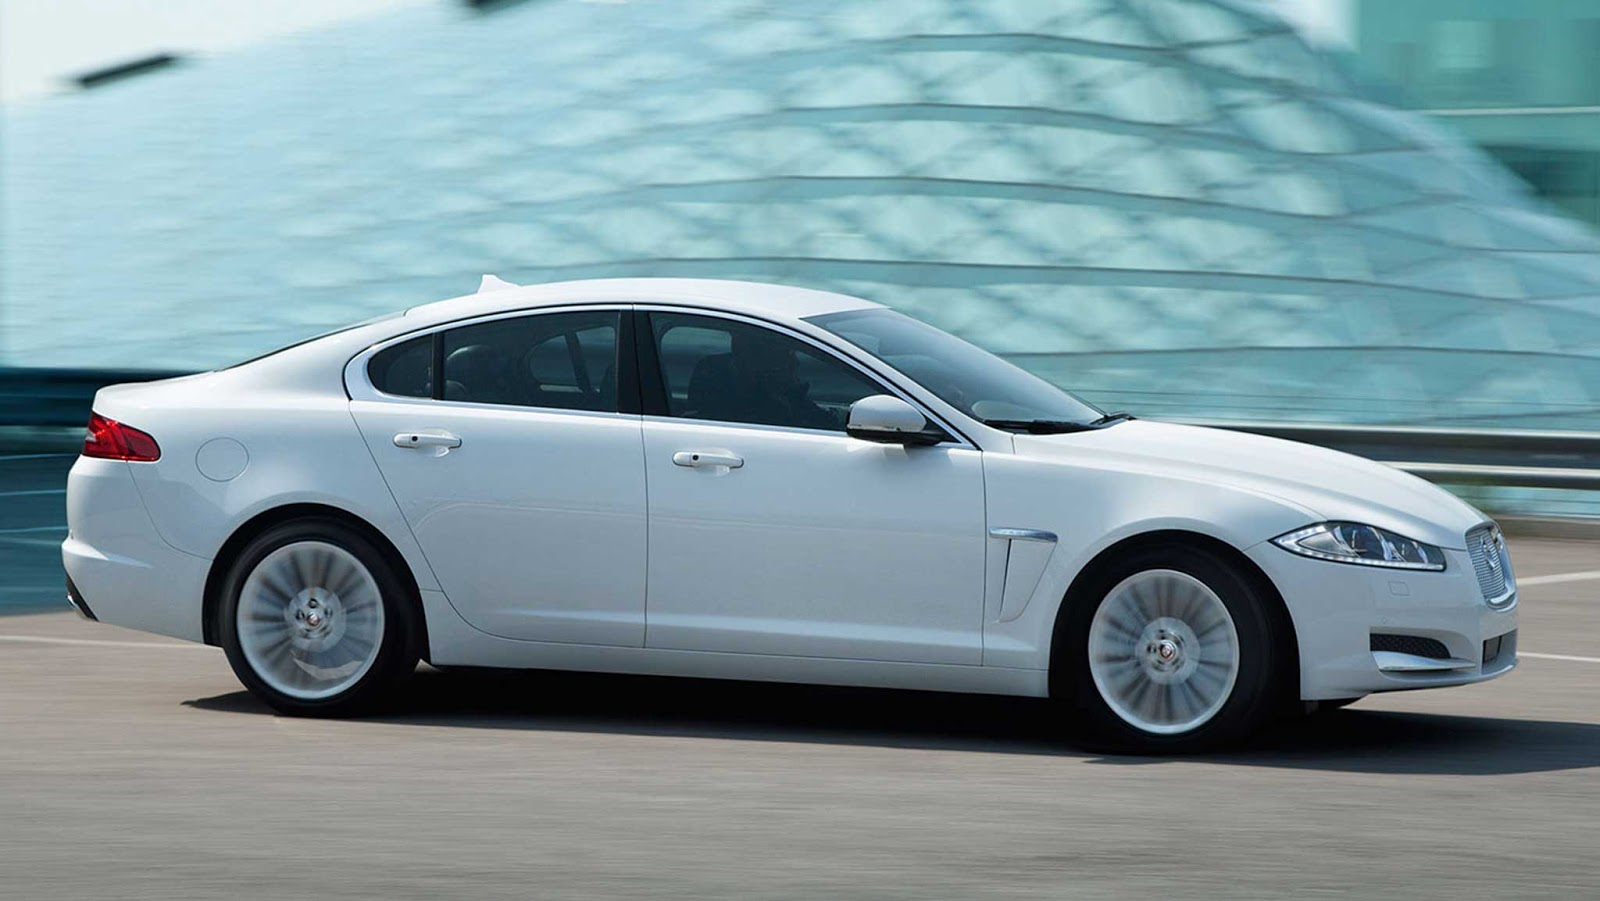 2015 jaguar xf r sport new cars pictures. Black Bedroom Furniture Sets. Home Design Ideas